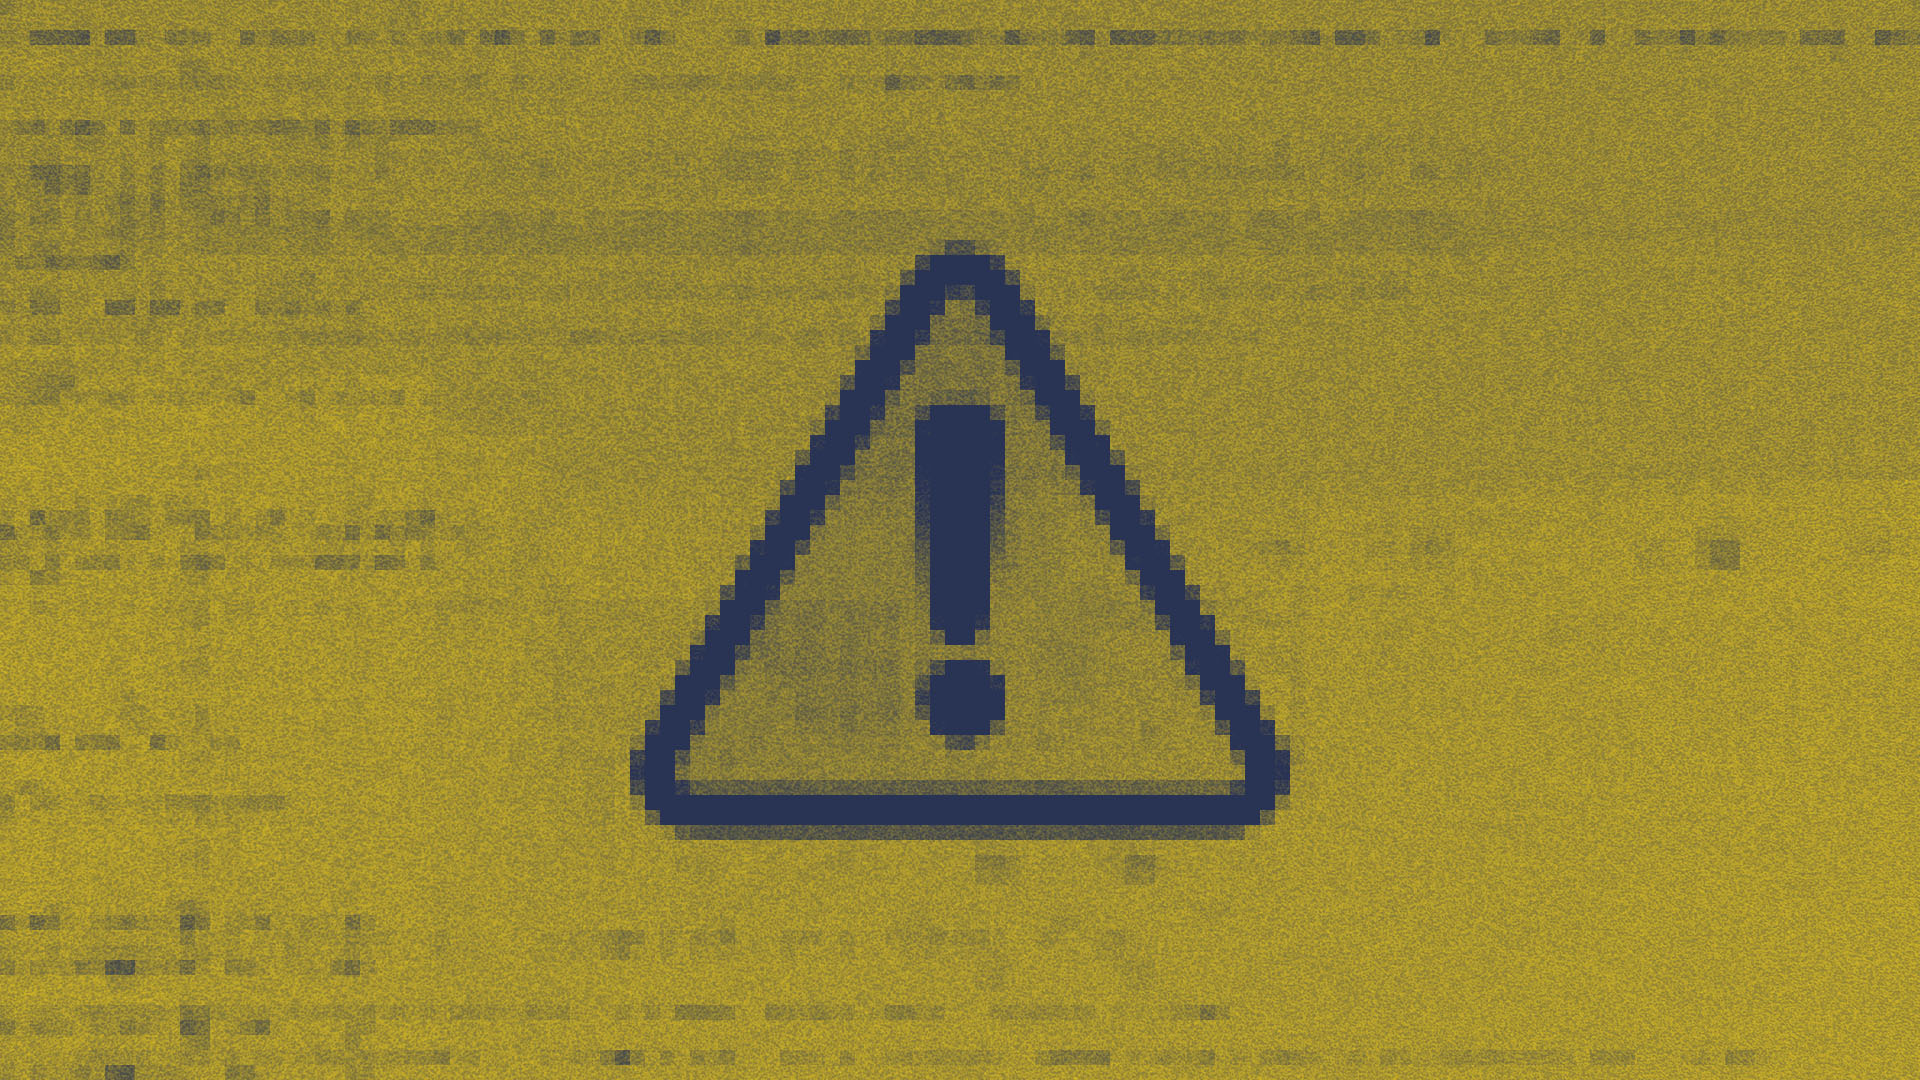 A warning sign showing a triangle with an exclamation mark inside in Roll brand colours